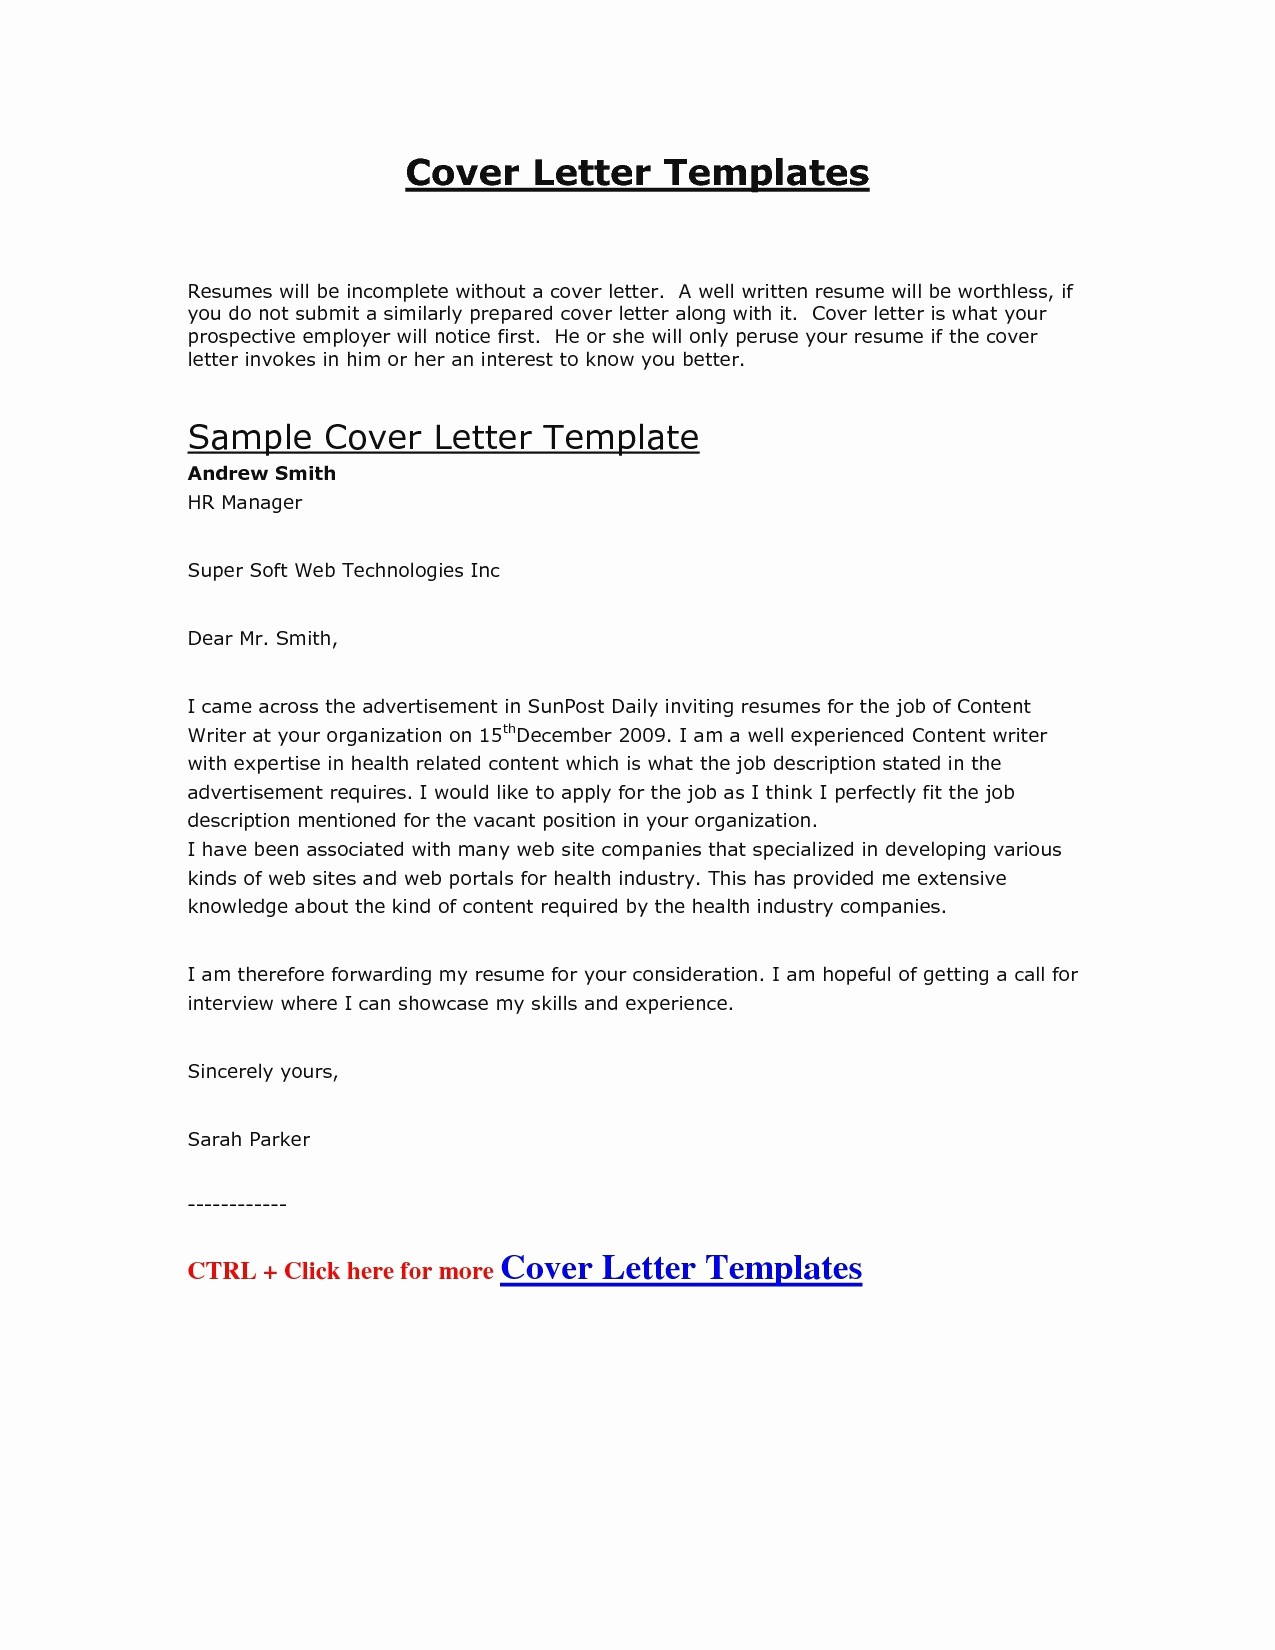 Cover Letter On A Resume Lovely Resume Cover Letter Template 2017